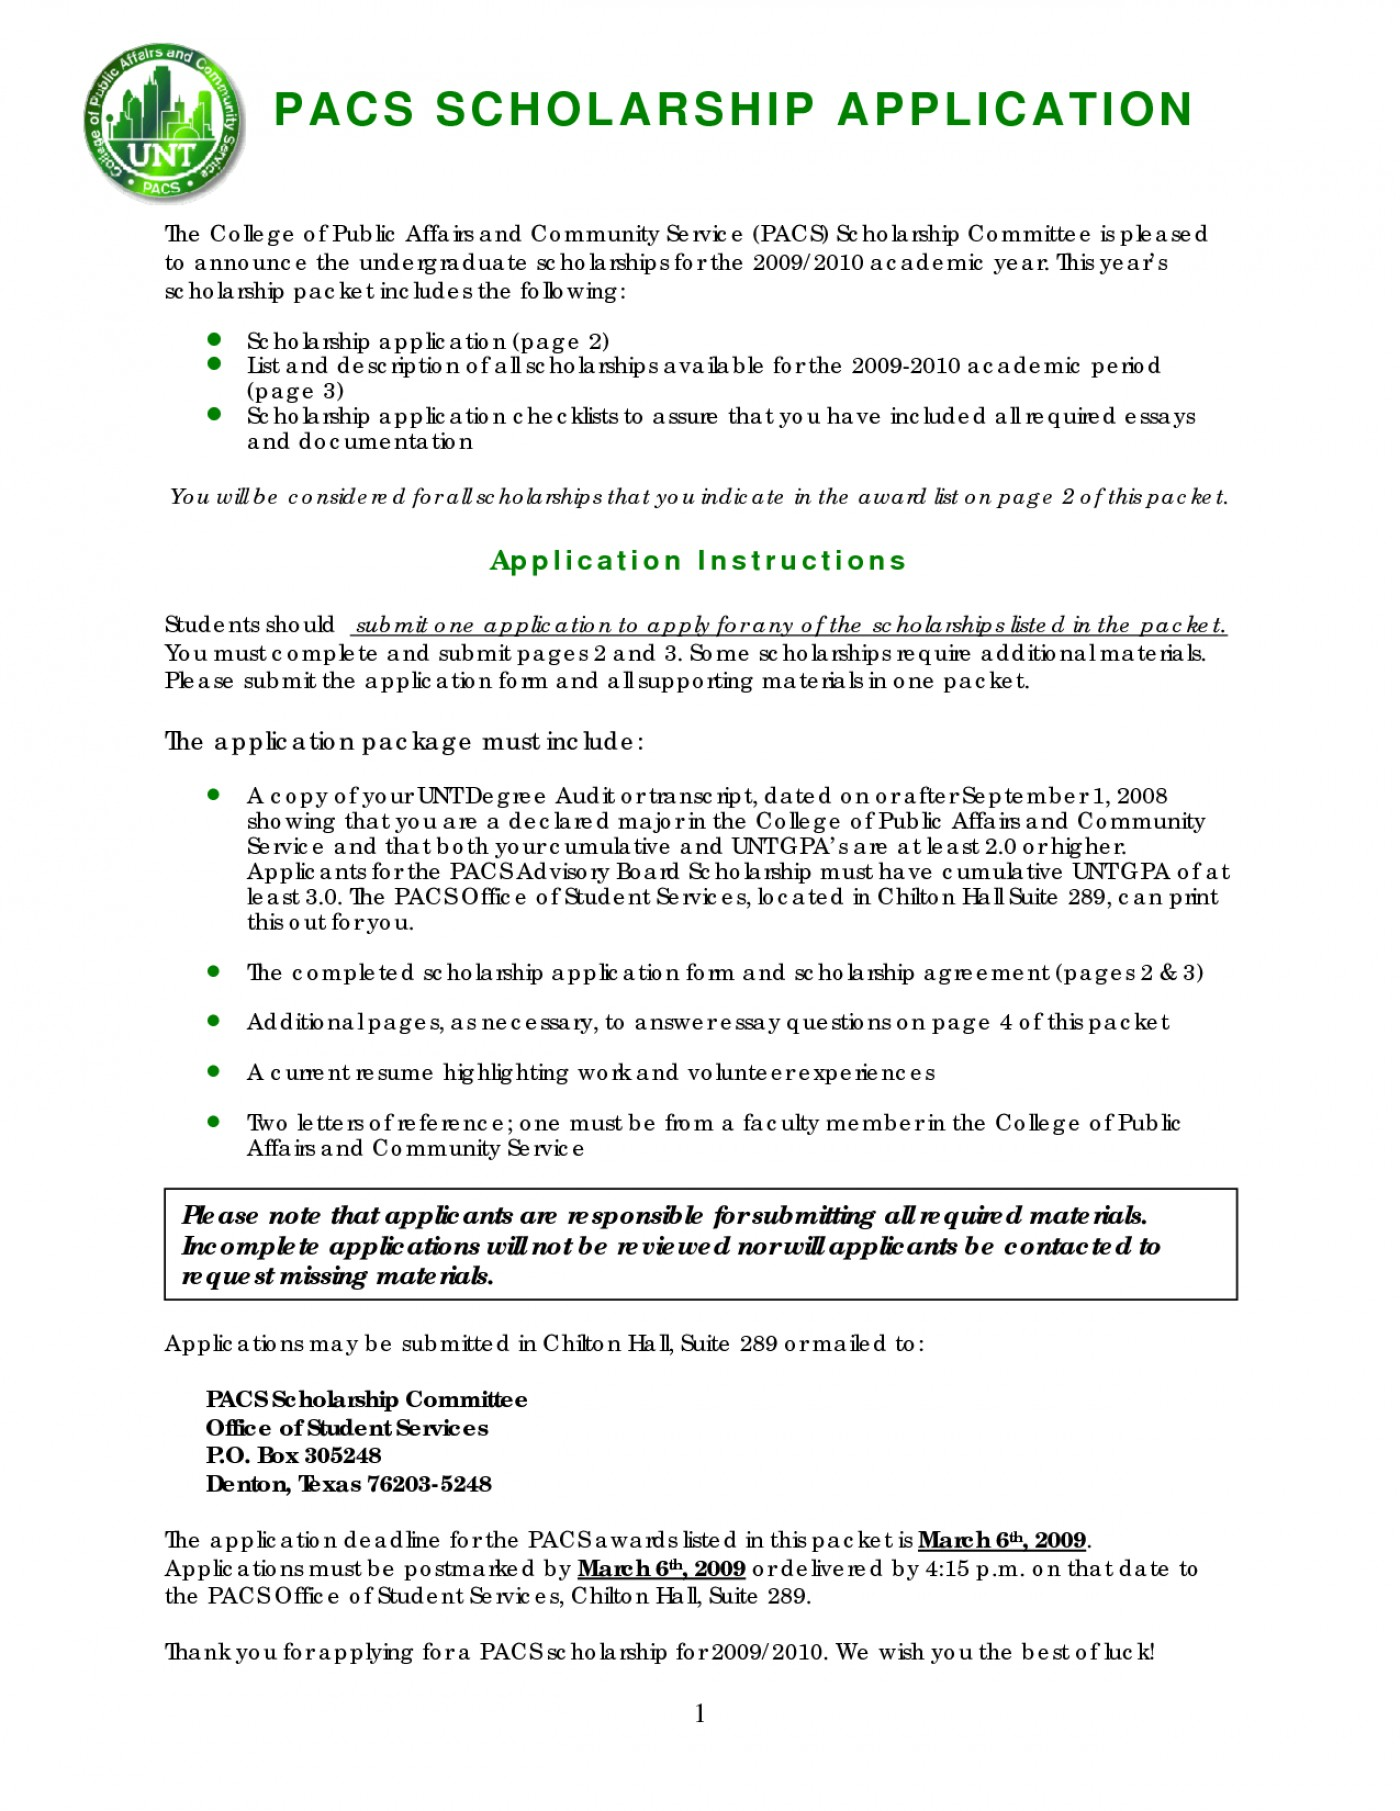 003 Scholarship Application Essay Example Staggering Mba Sample Tips College Ideas 1400